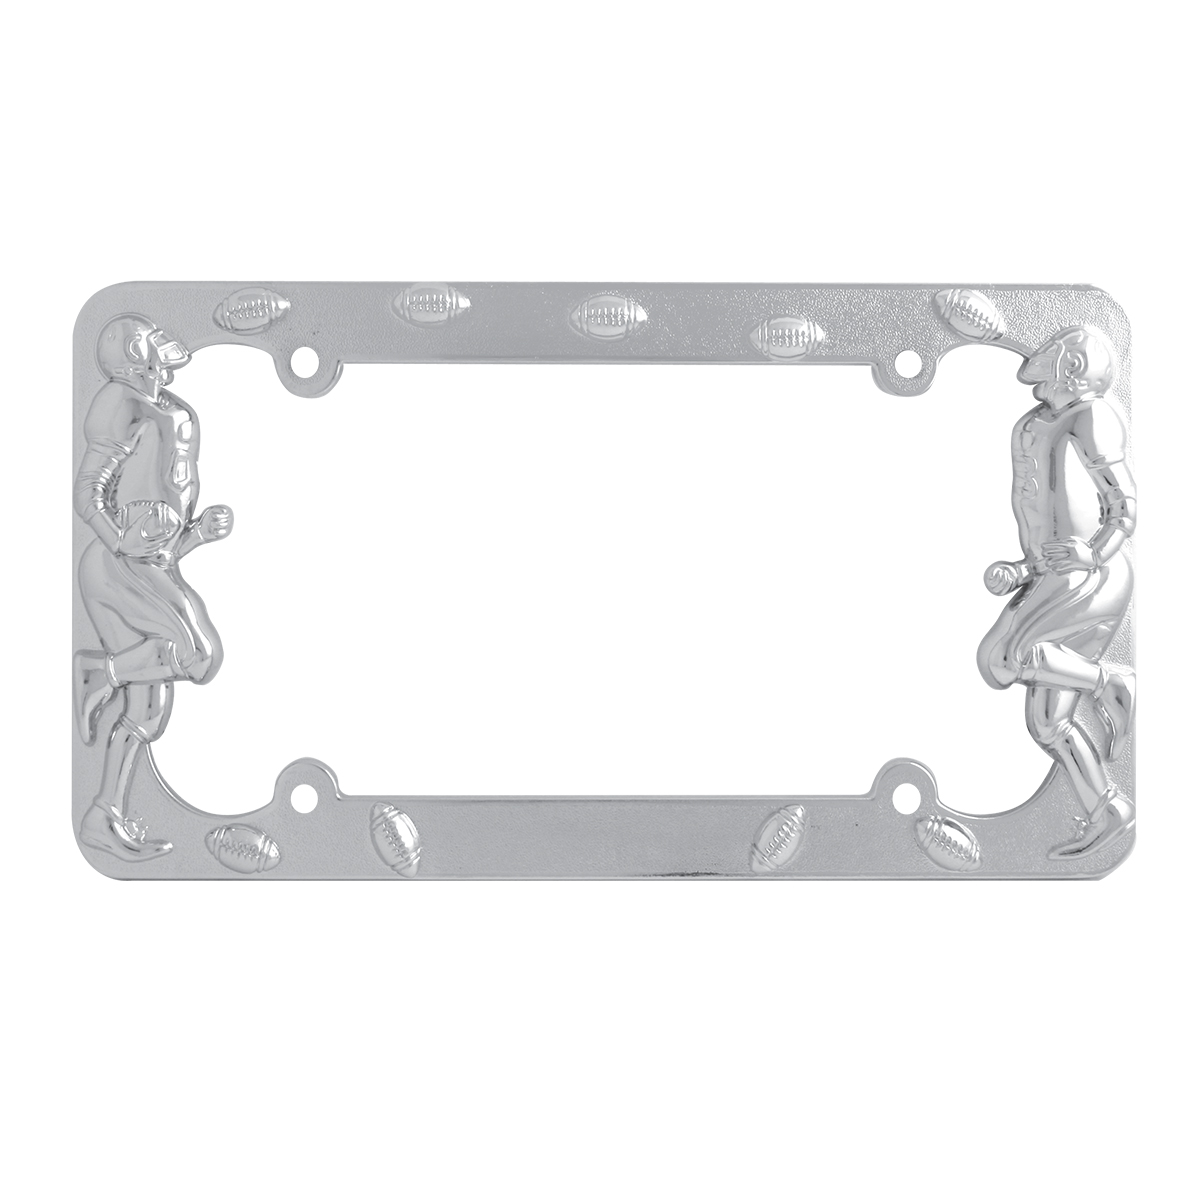 60460 Football Player License Plate Frame